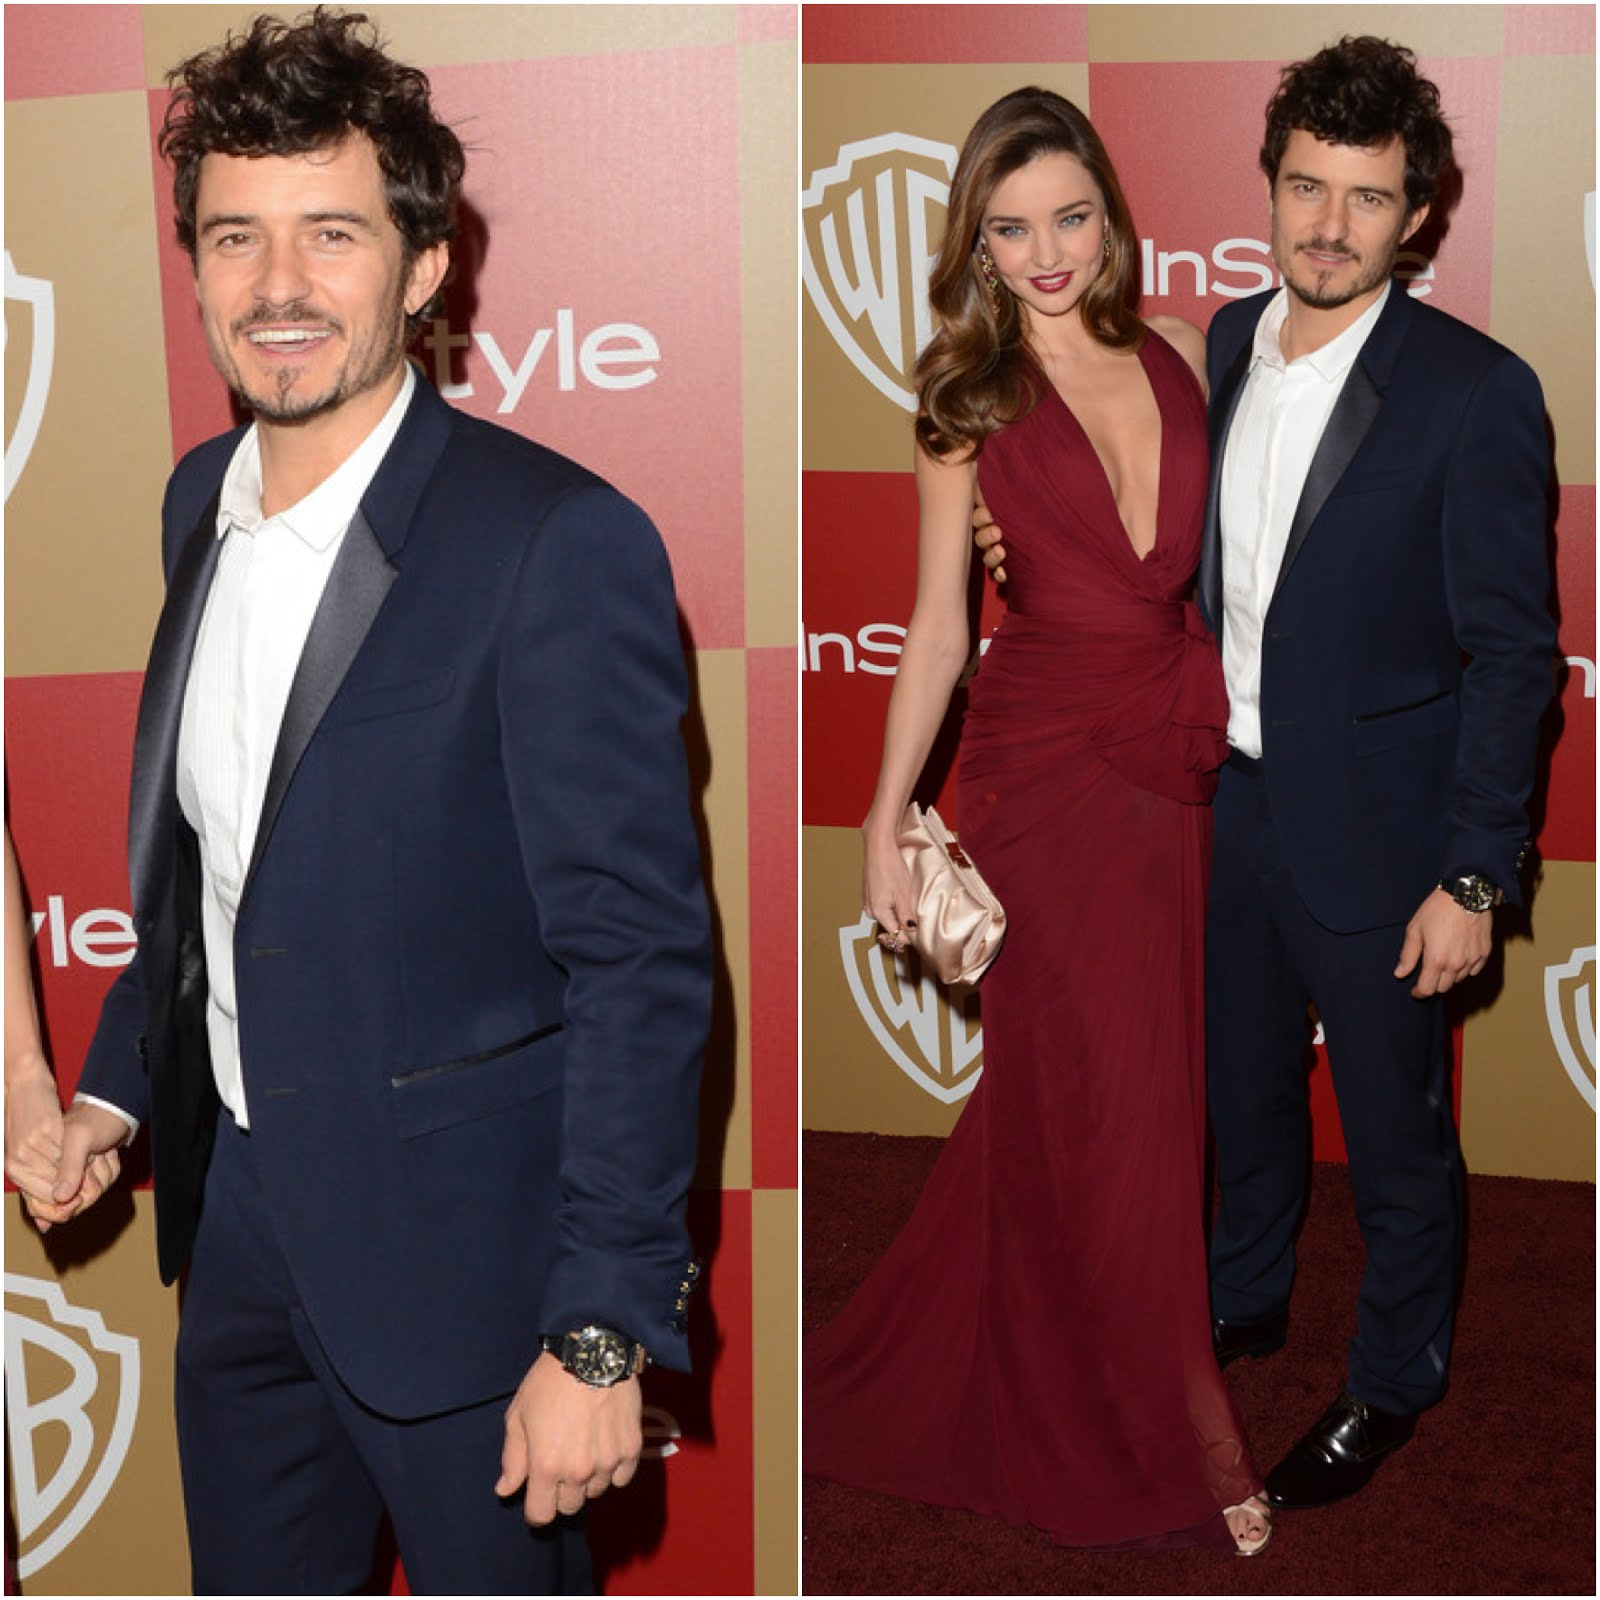 00O00 Menswear Blog Miranda Kerr and Orlando Bloom in Burberry - 70th Annual Golden Globes Awards